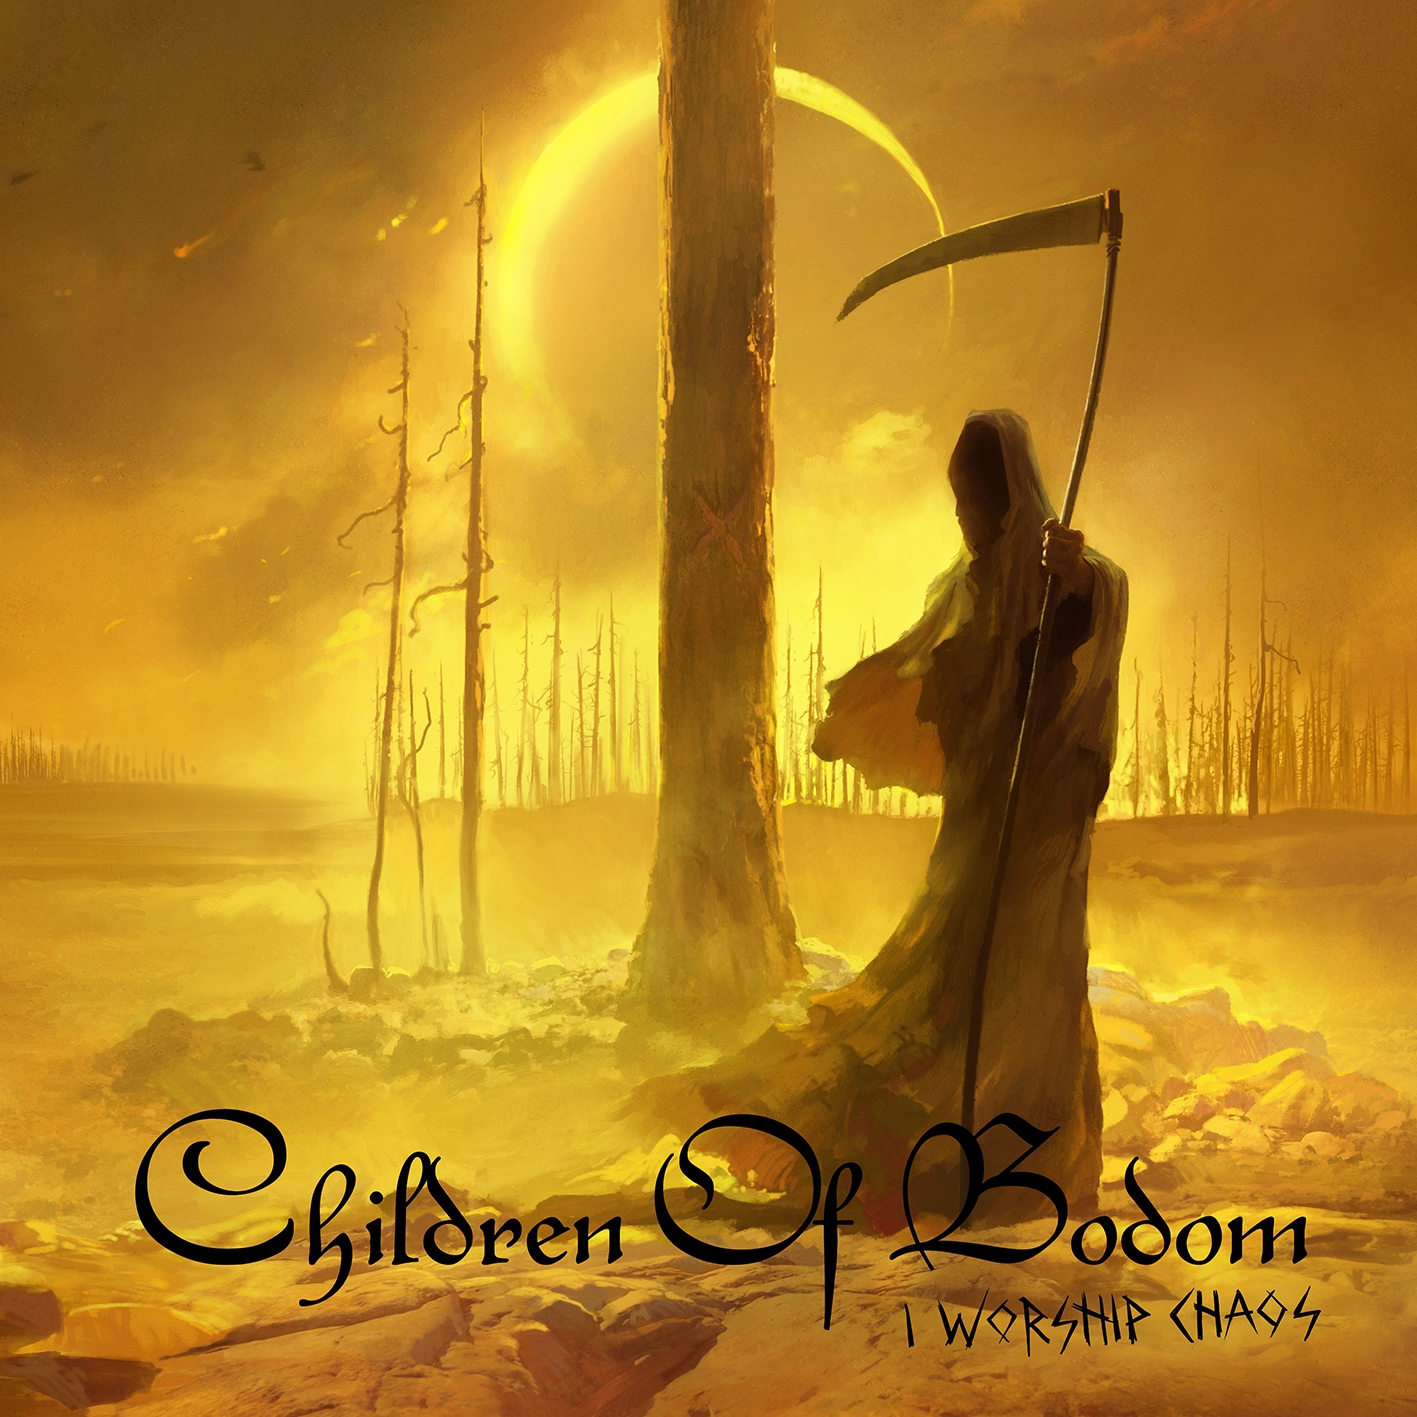 CD_Children of bodom